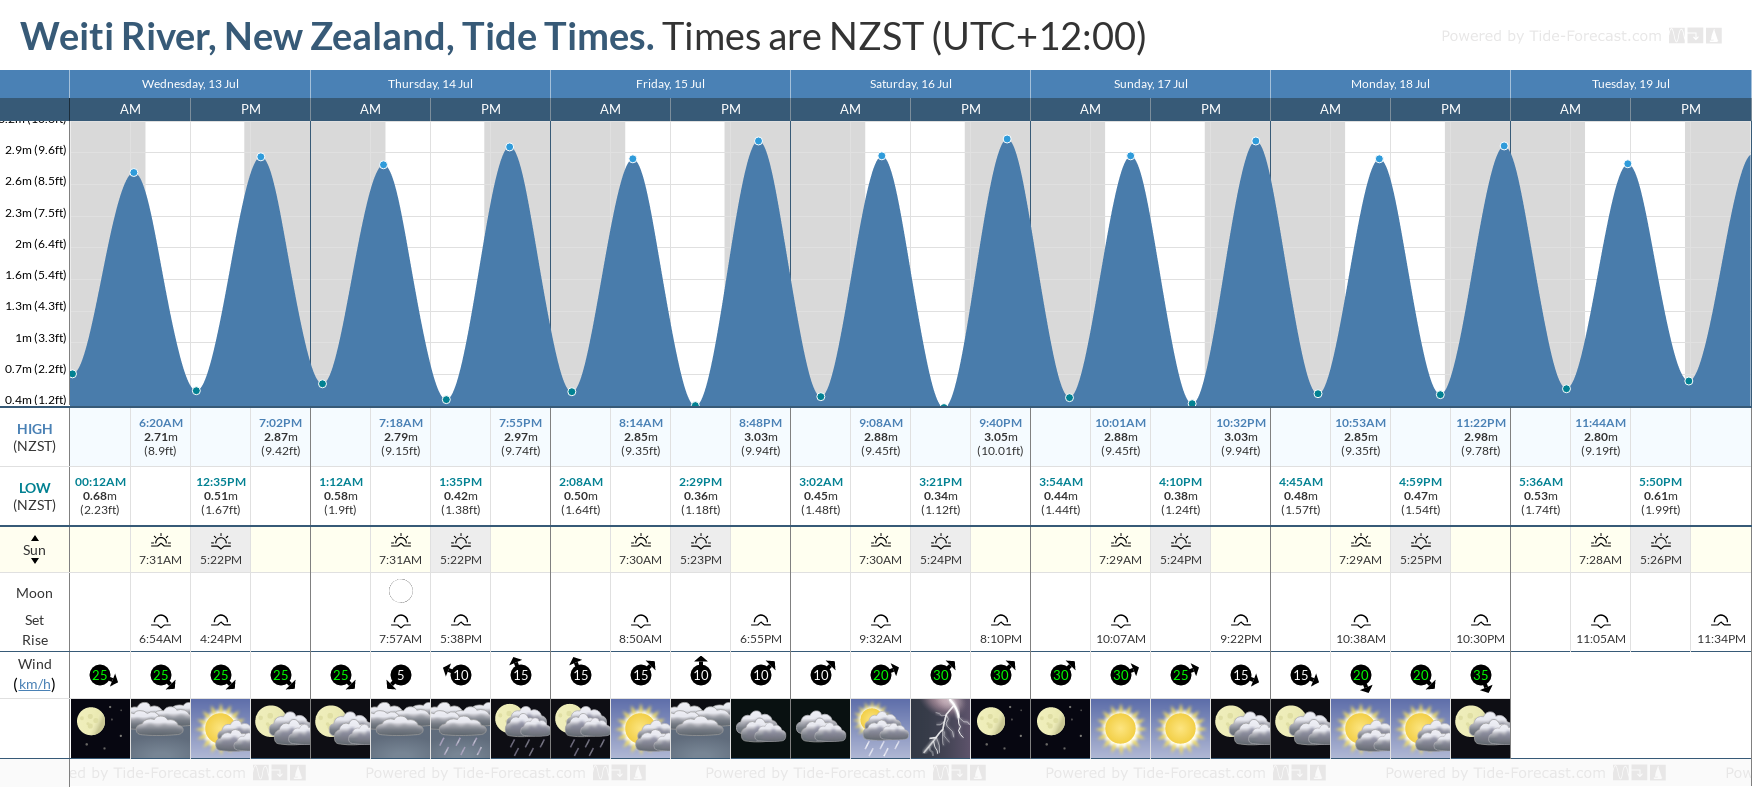 Weiti River, New Zealand Tide Chart including high and low tide tide times for the next 7 days